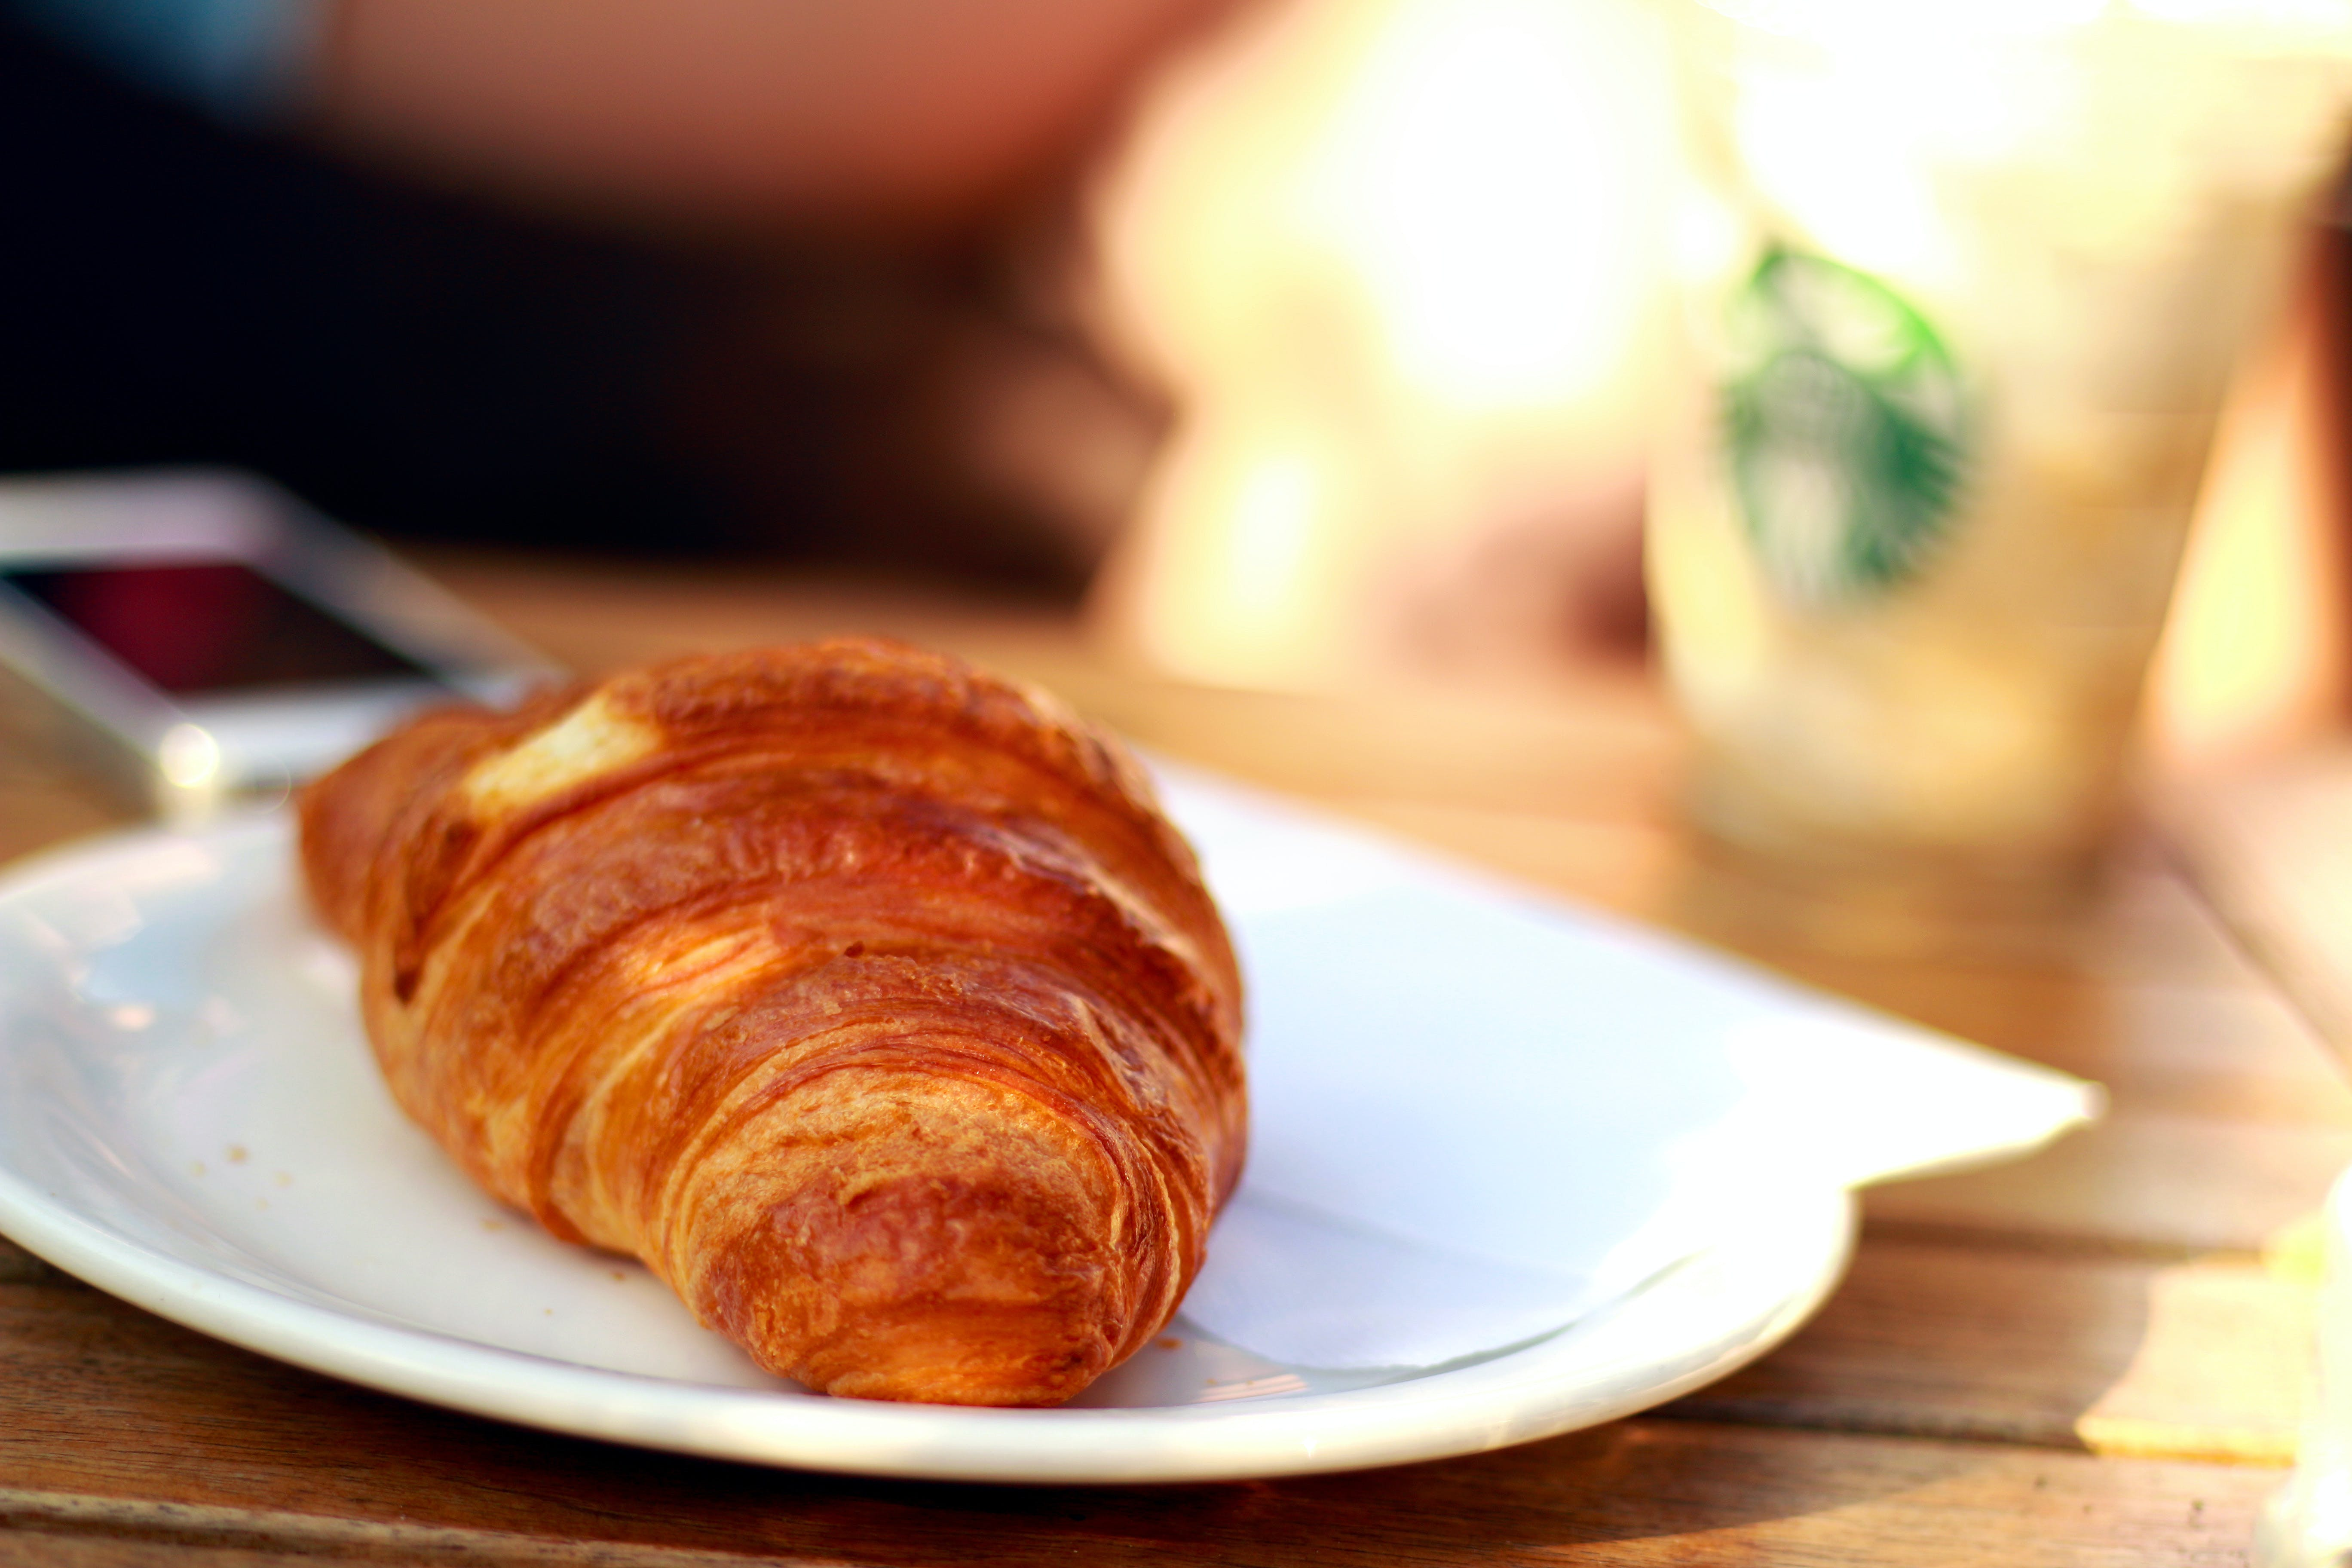 Croissant Bread on White Ceramic Plate